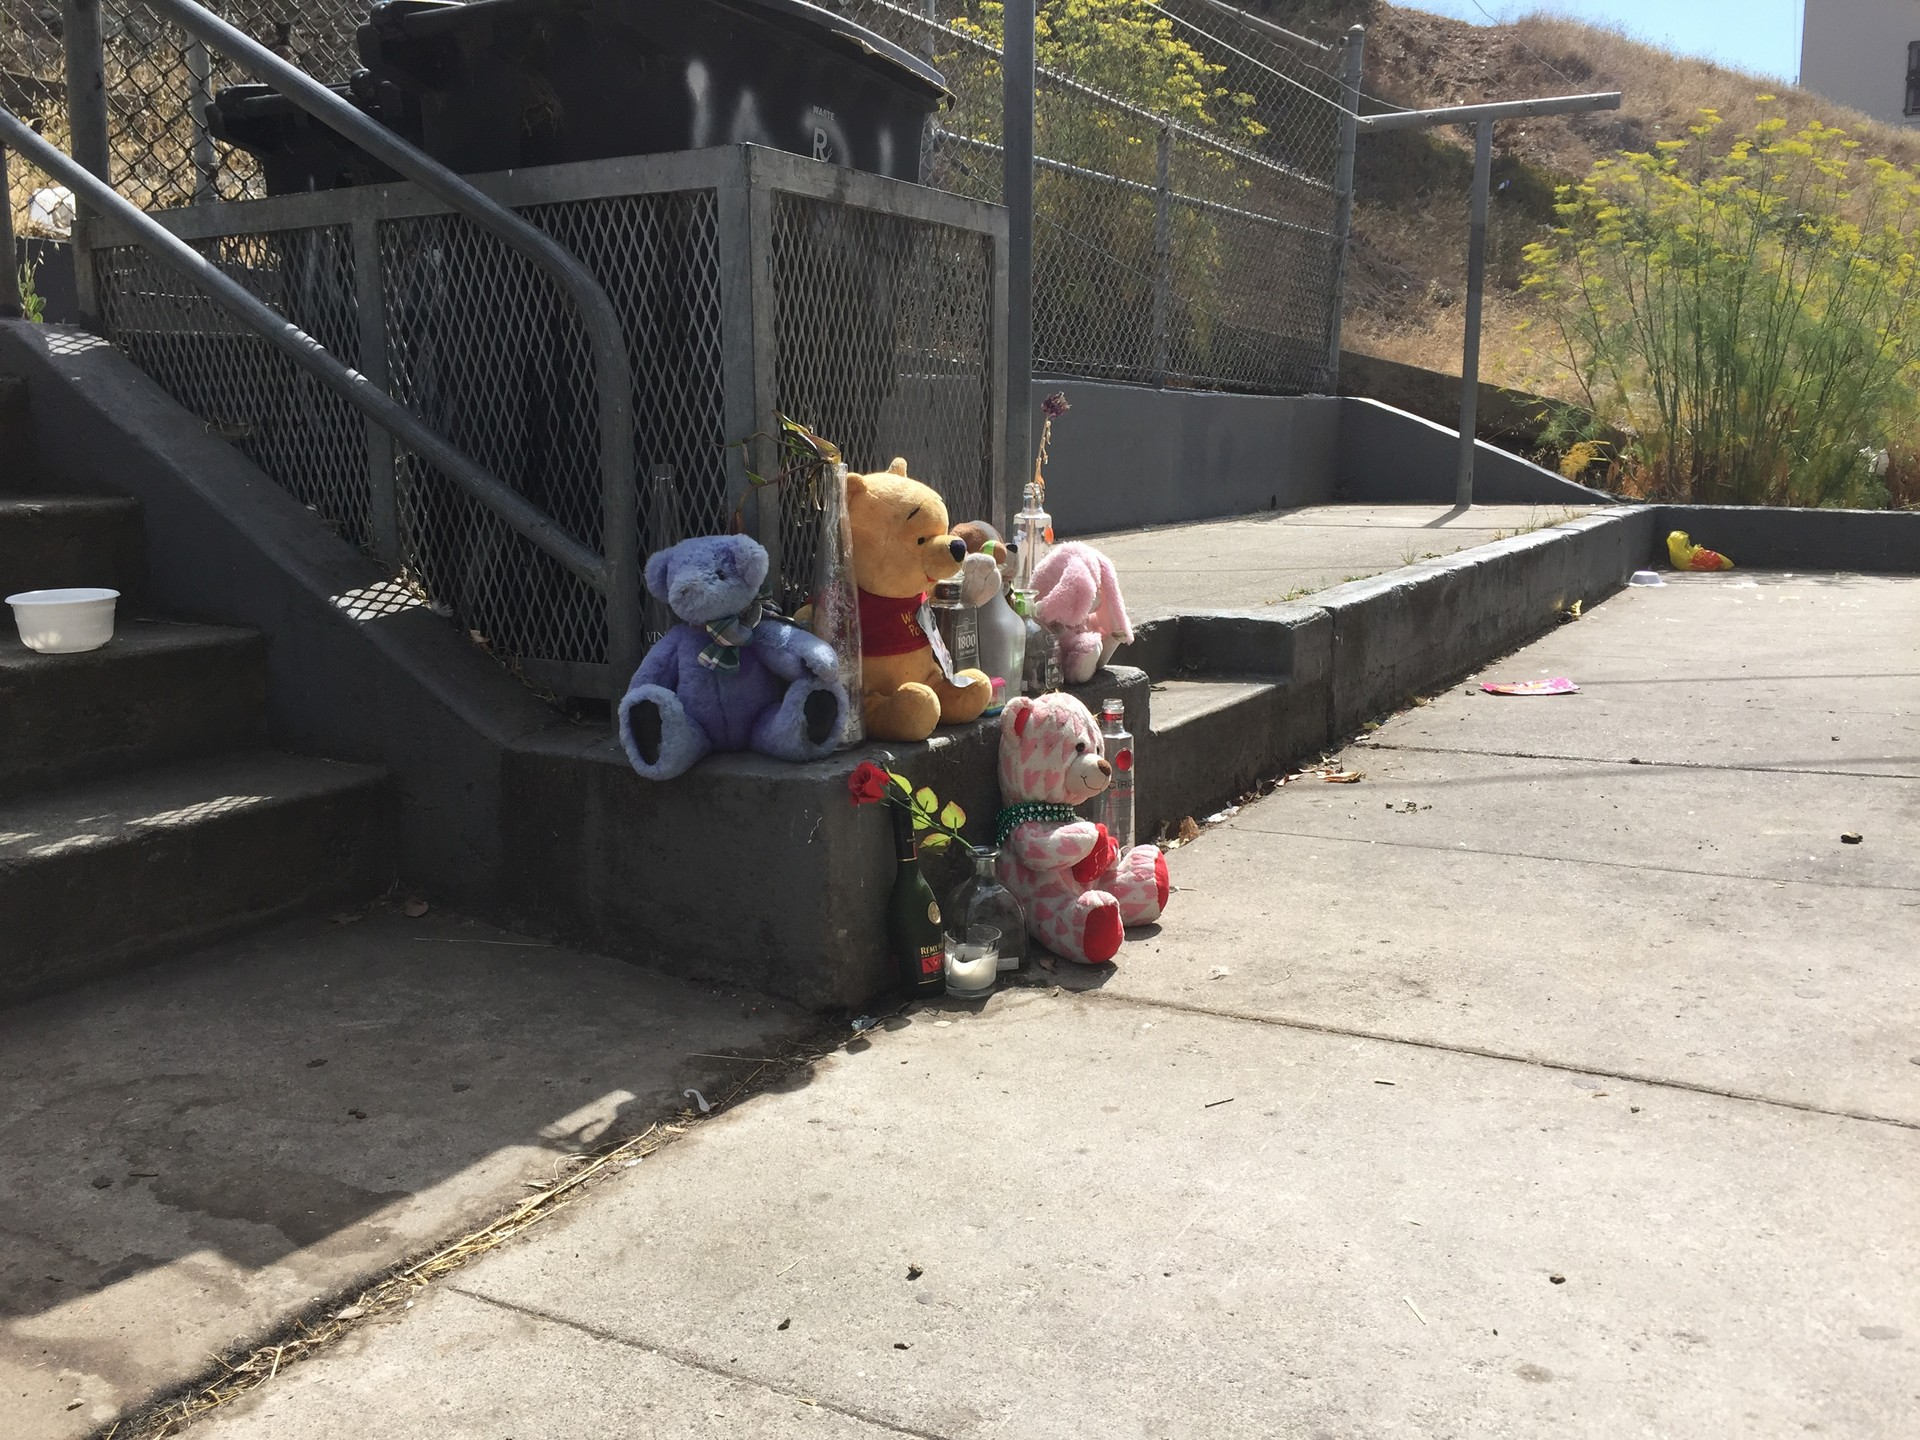 A shrine on the 1000 block of Connecticut Street, in Potrero Terrace.